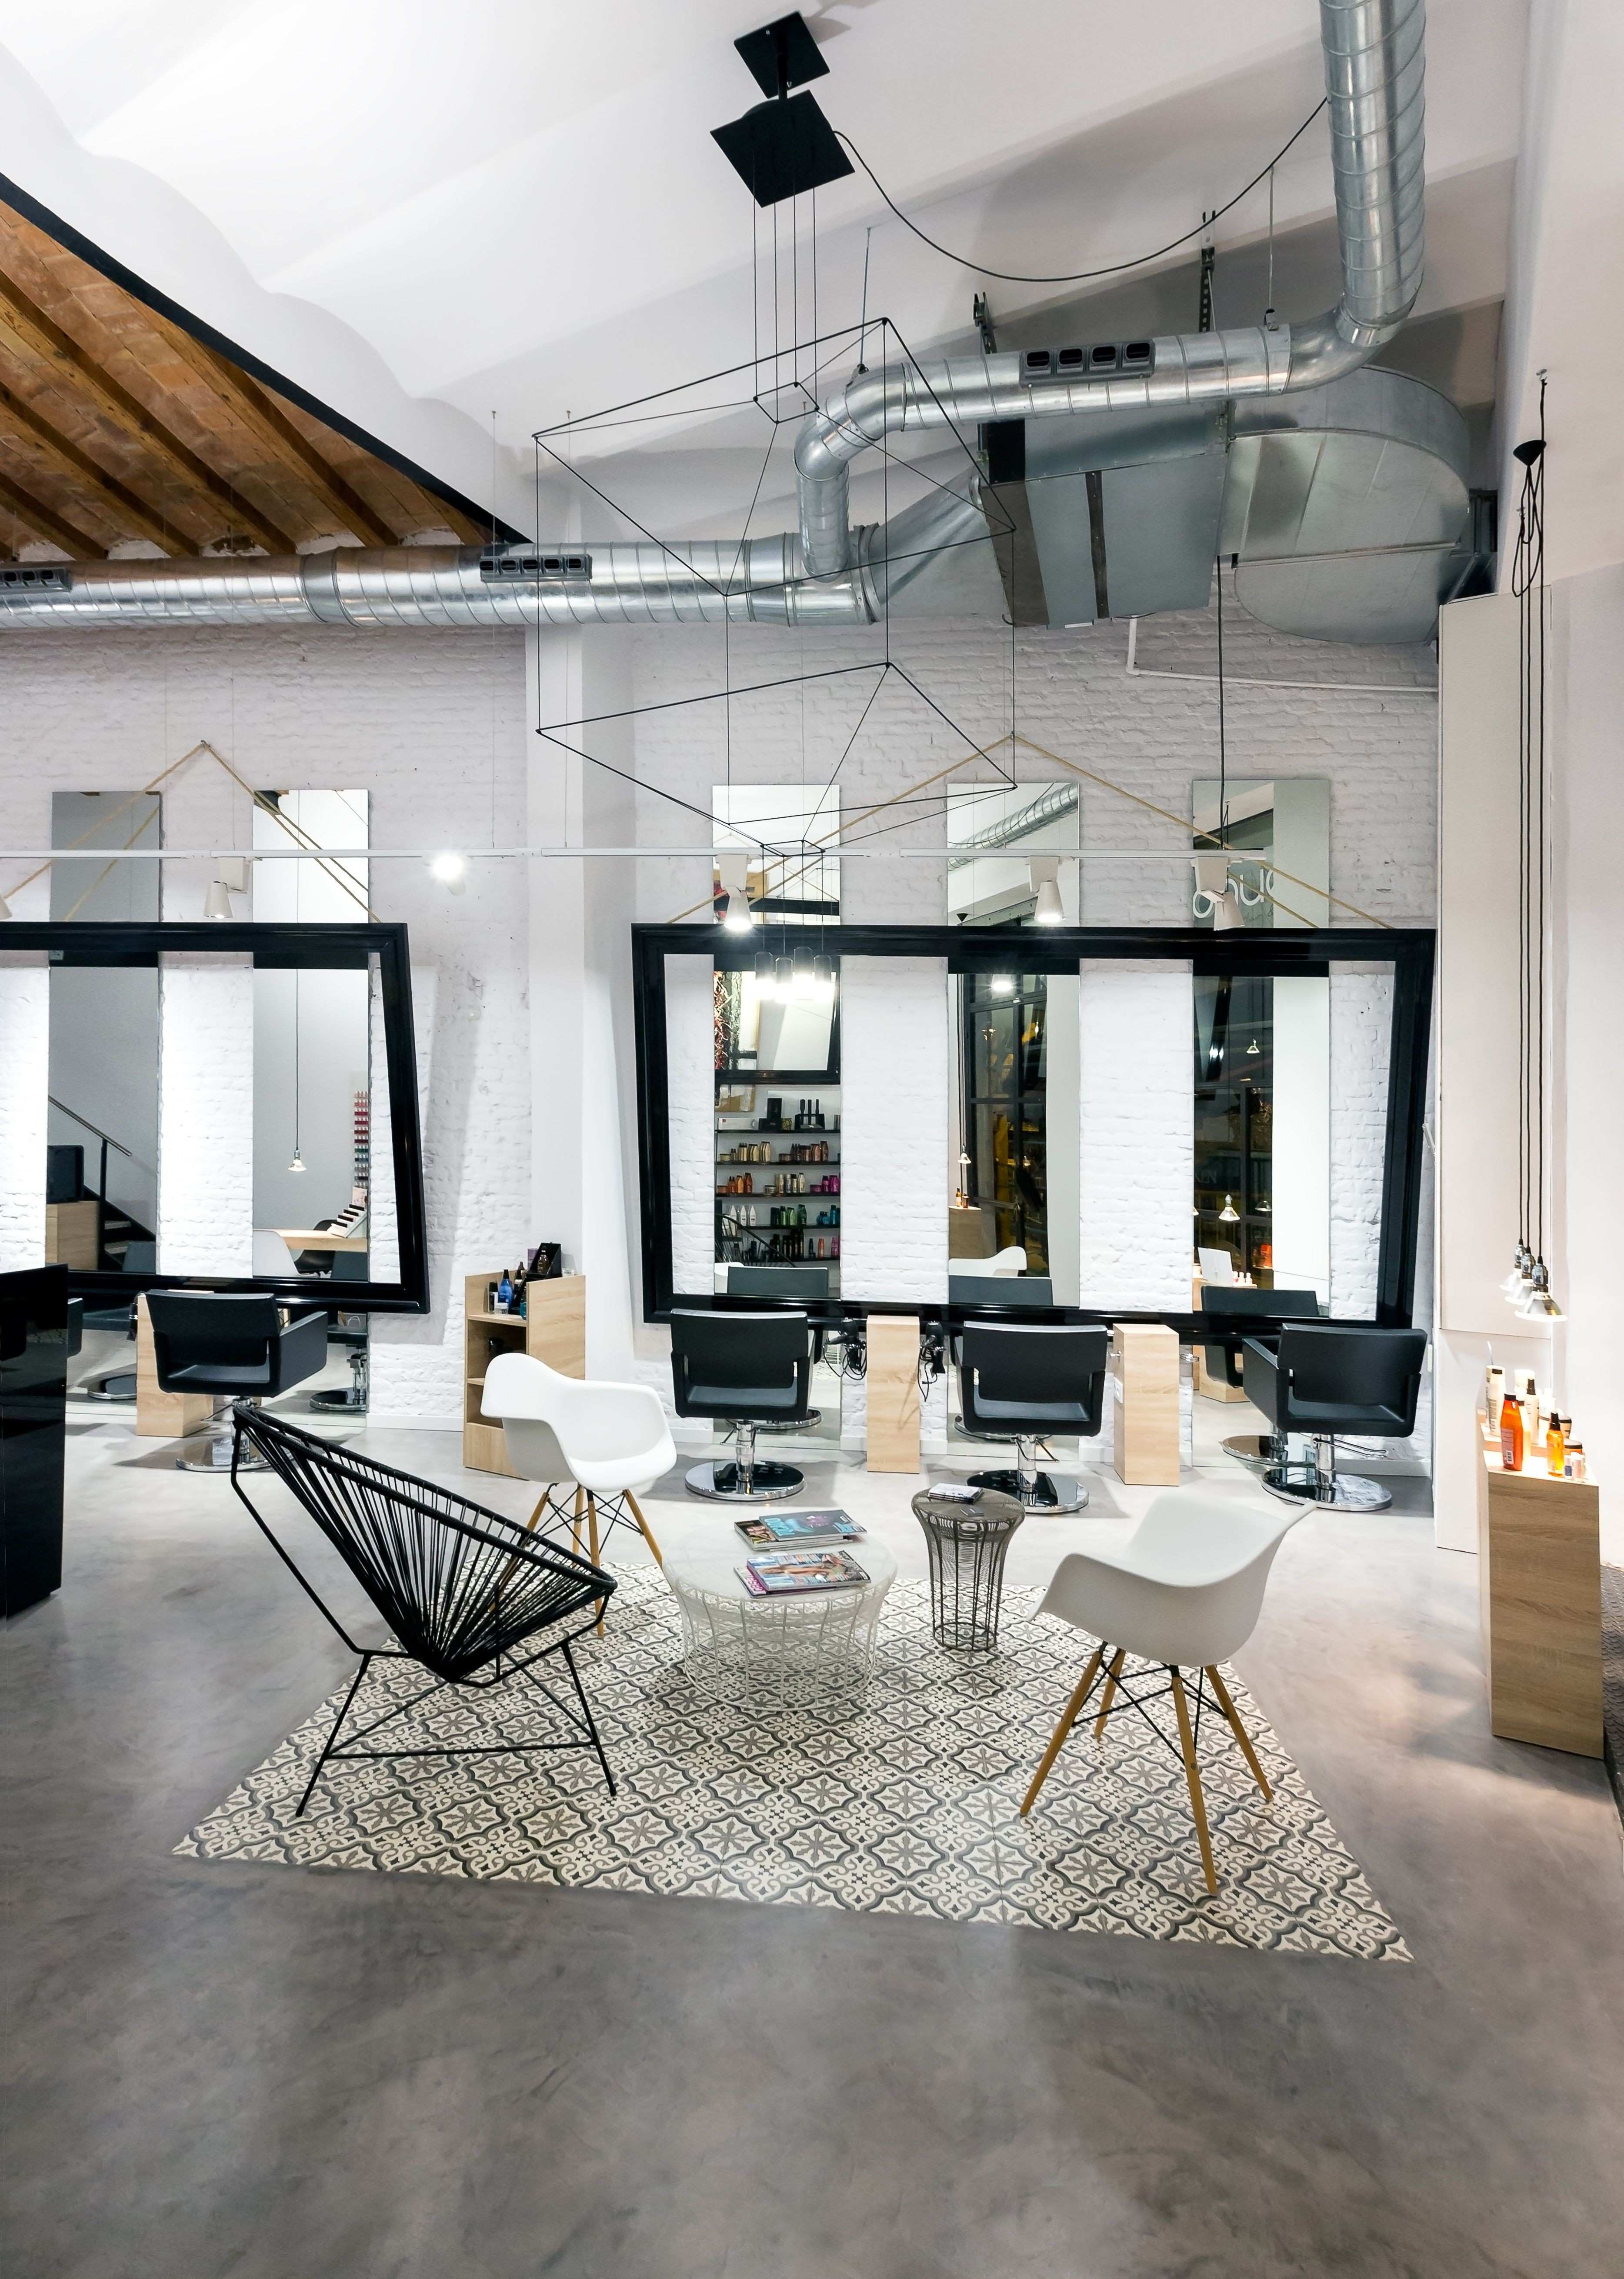 A volumetric WIREFLOW design lights up the lounge at Noguera Hair